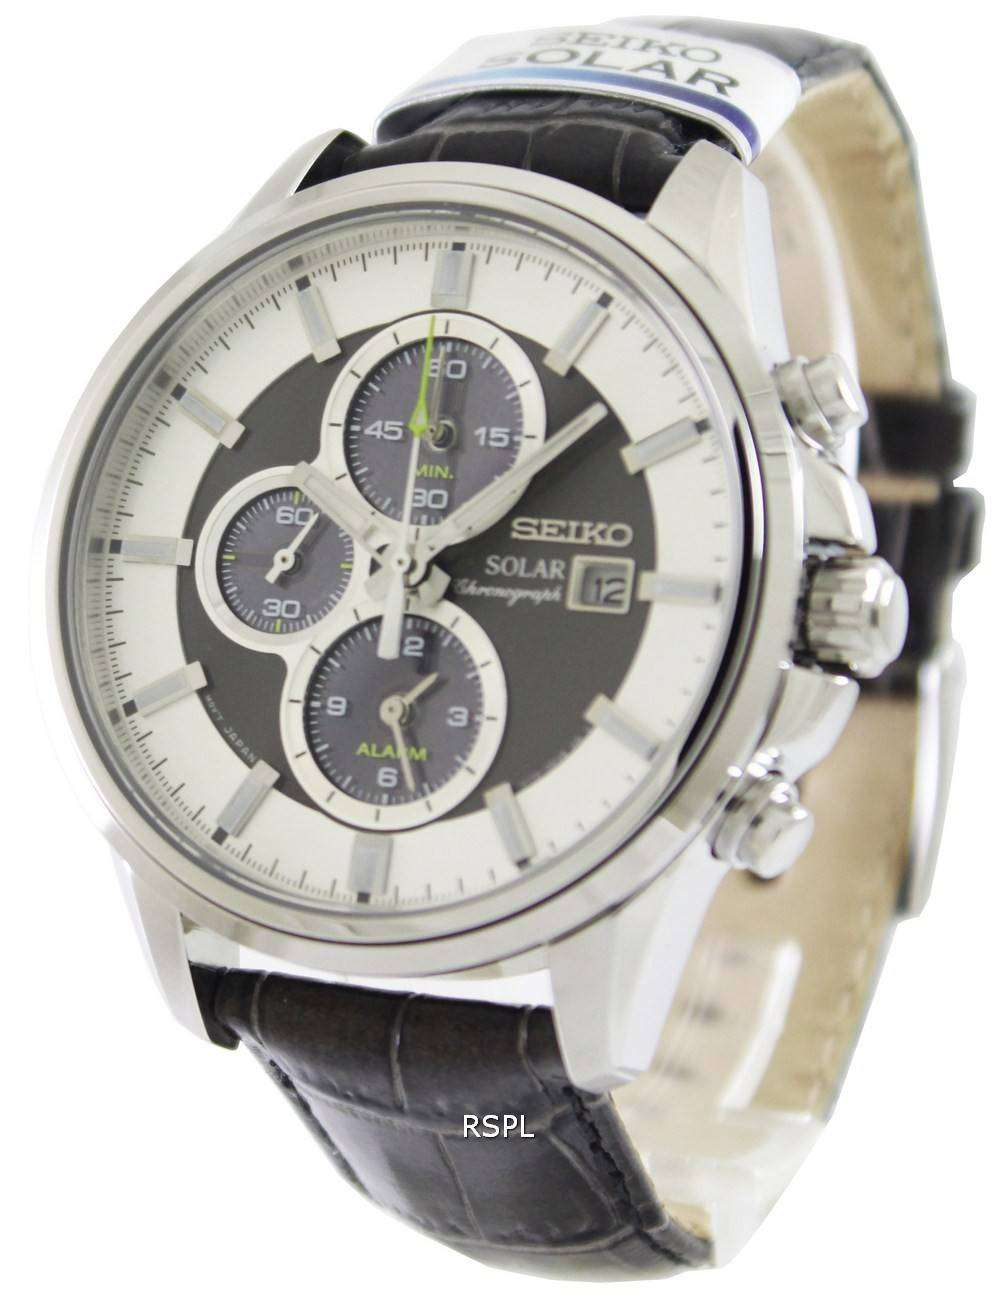 seiko solar chronograph ssc259p1 ssc259p mens watch. Black Bedroom Furniture Sets. Home Design Ideas